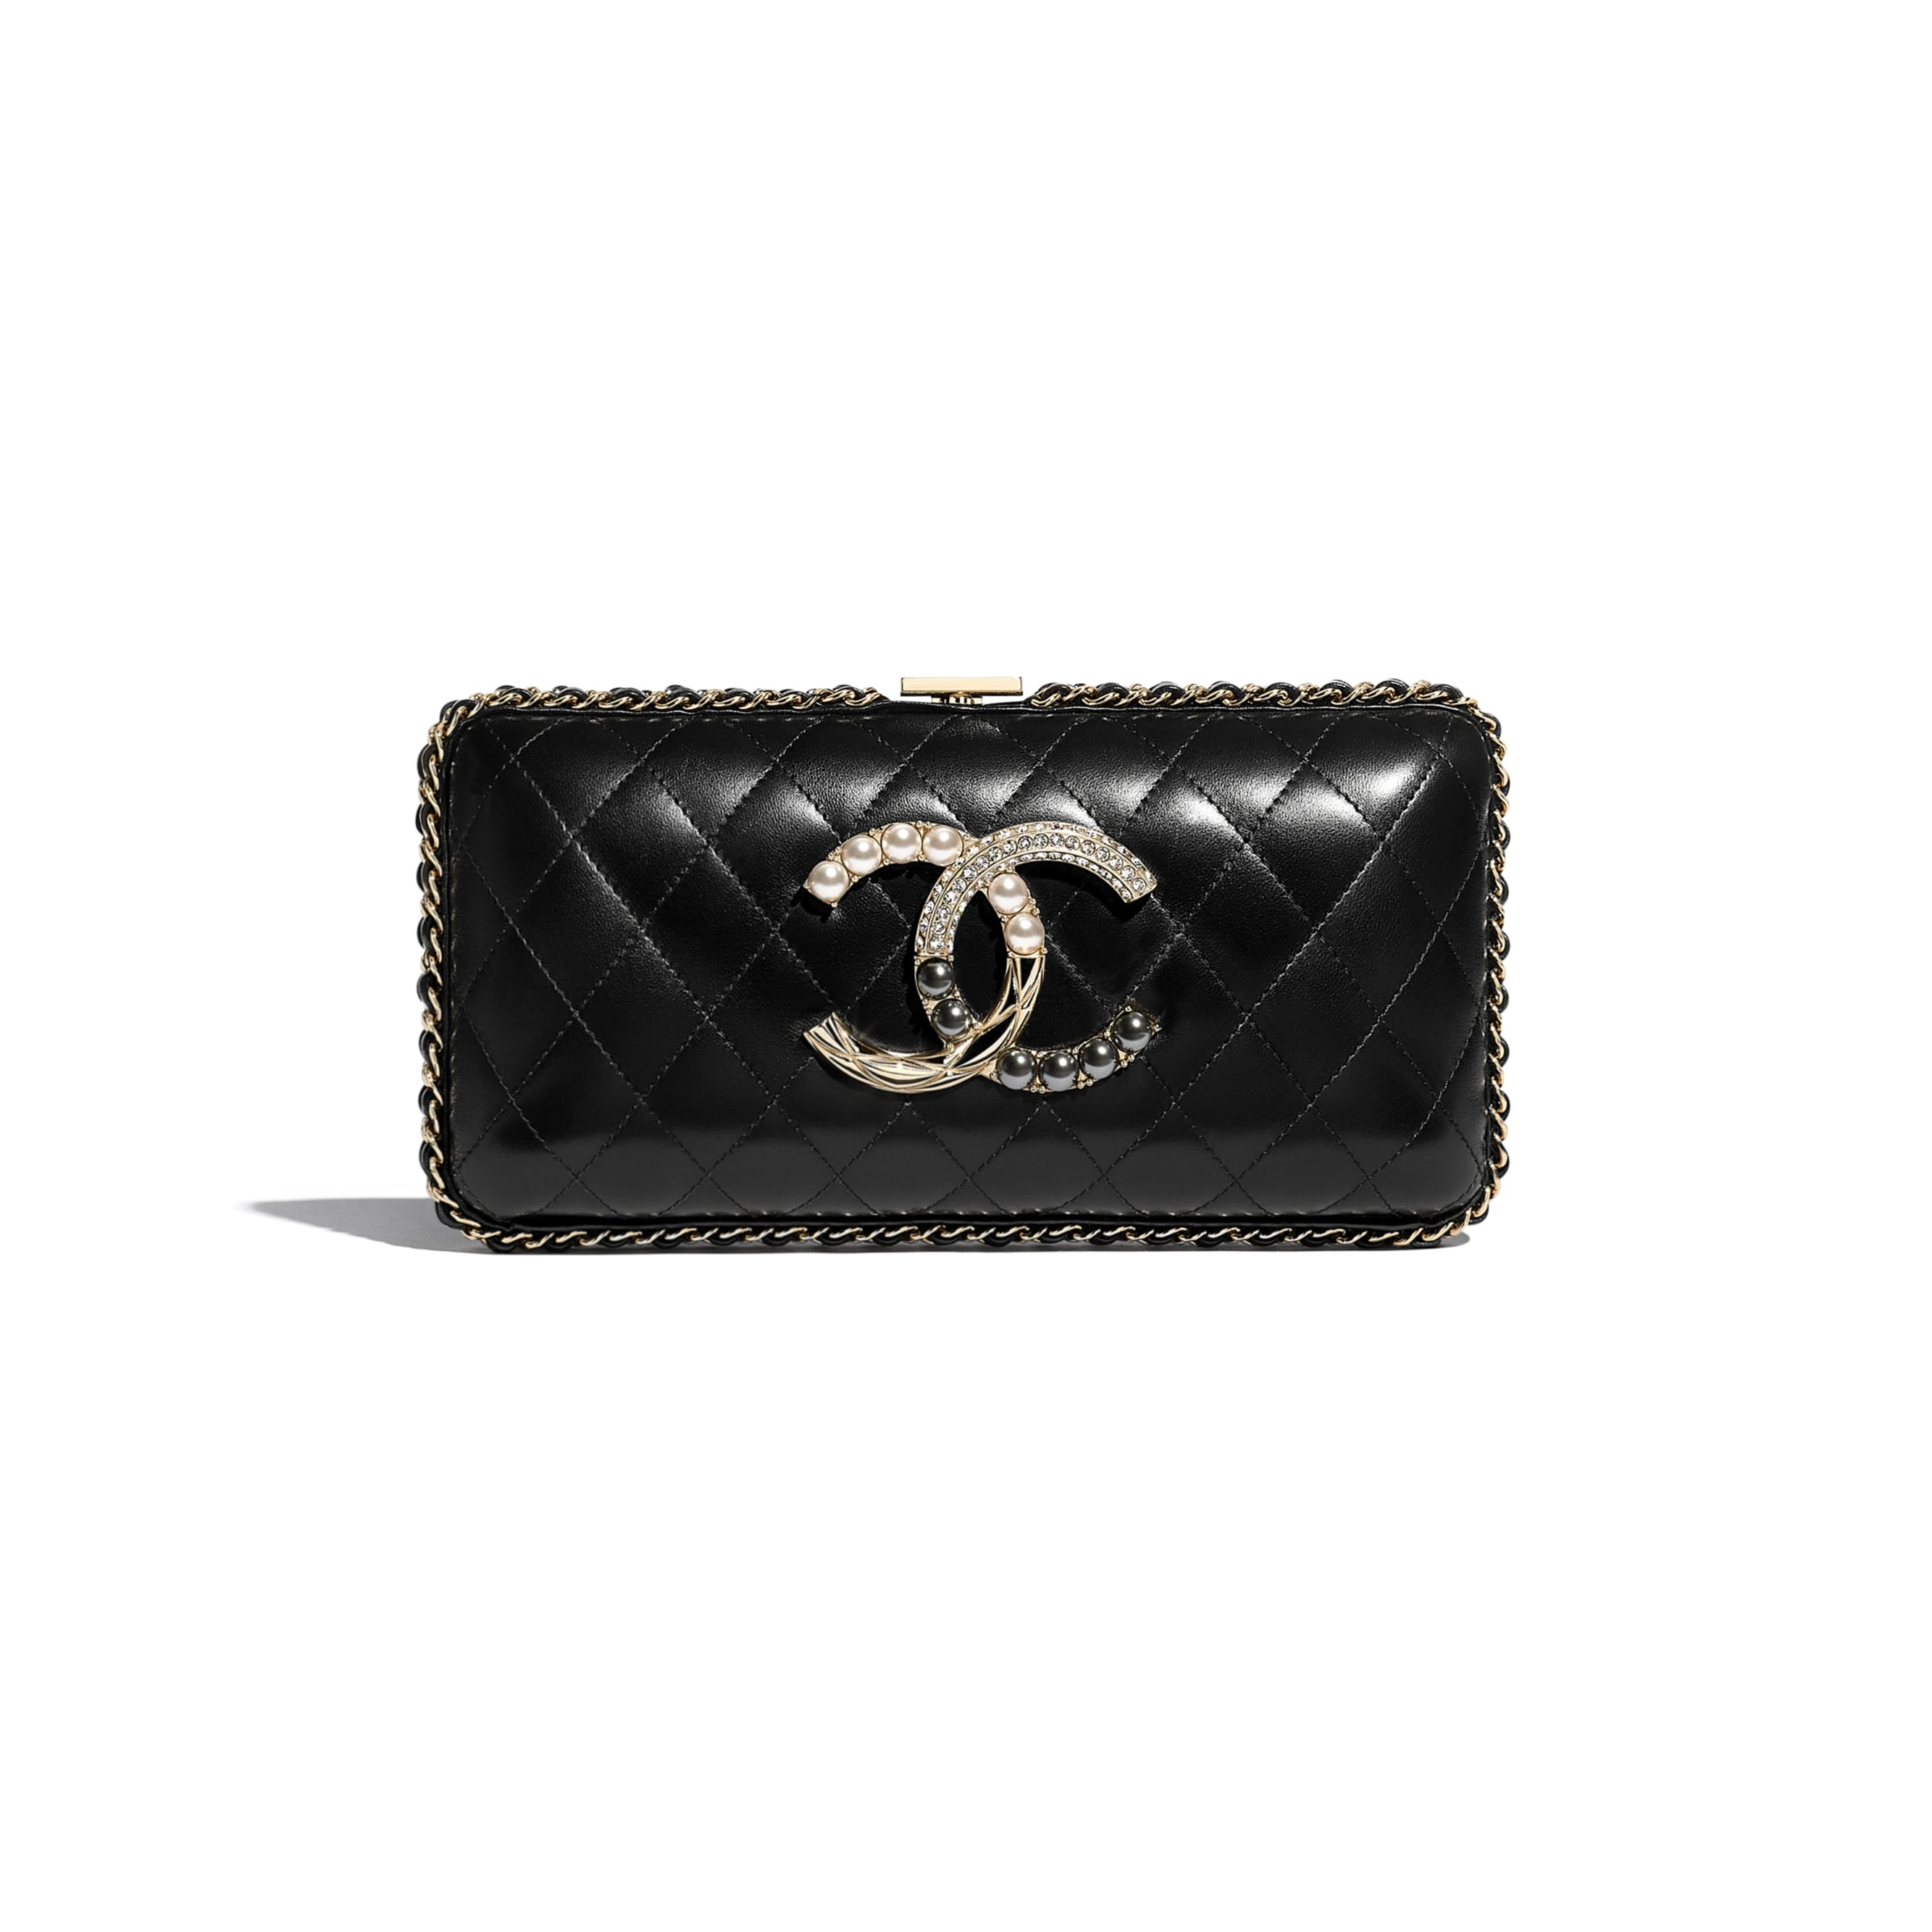 Evening Bag - Black - Lambskin, Imitation Pearls, Diamanté  & Gold-Tone Metal - Default view - see standard sized version